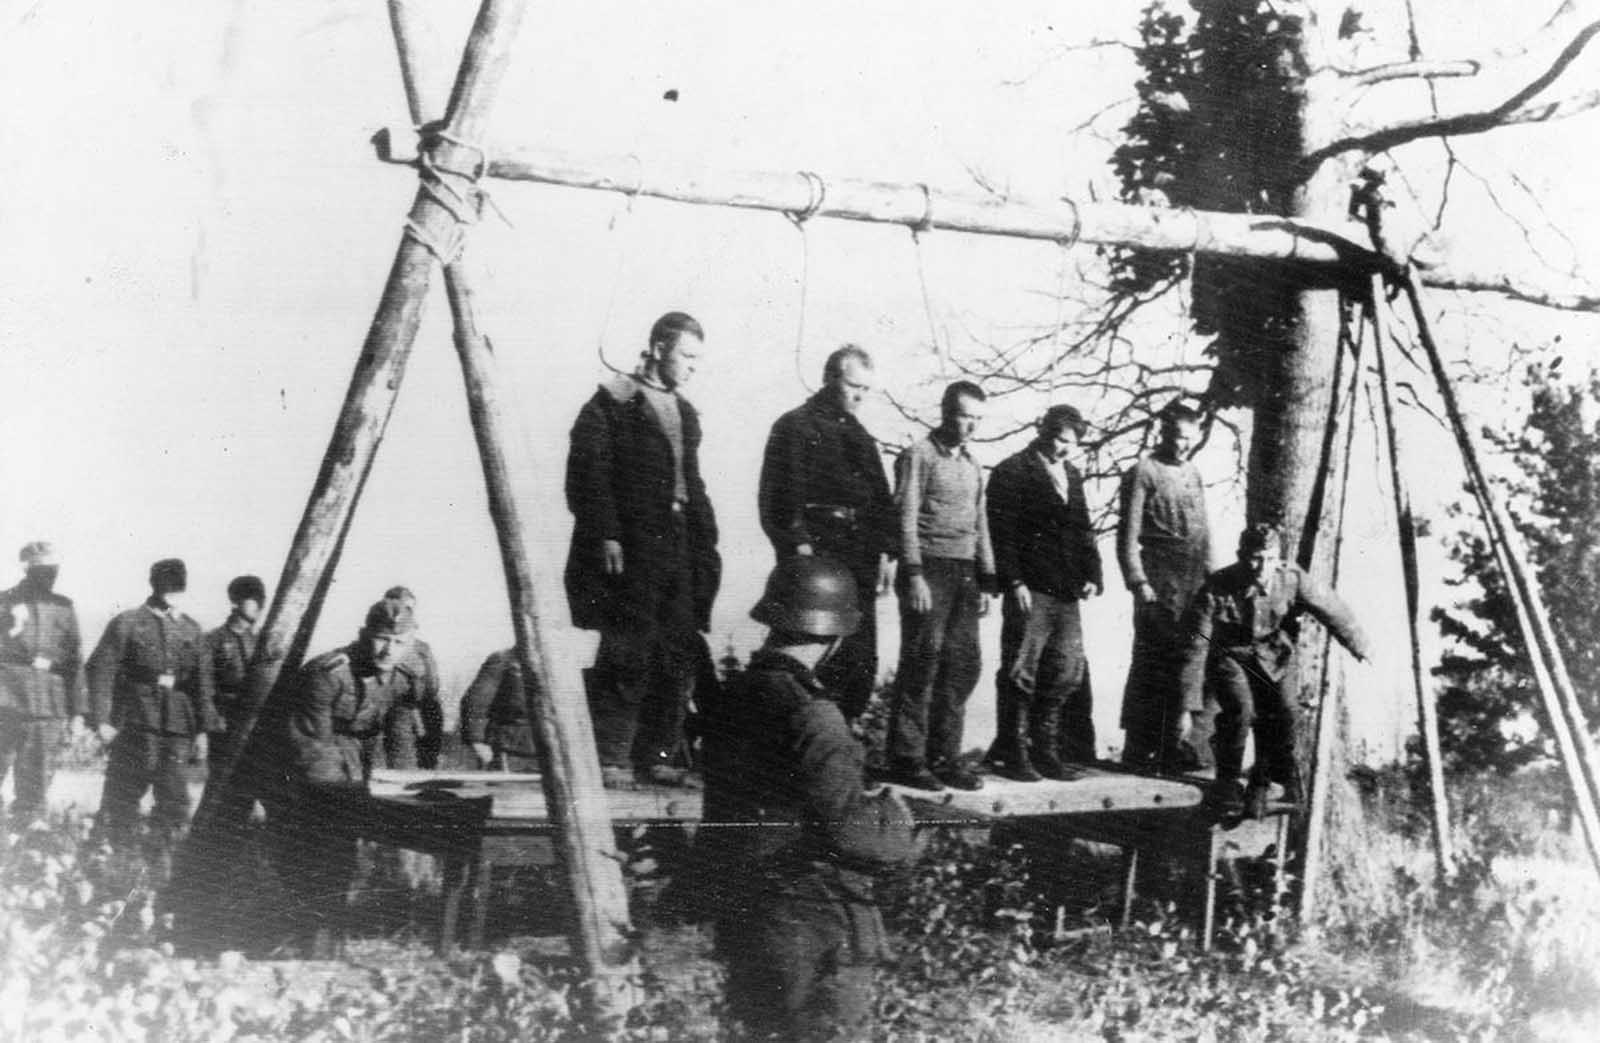 Five Soviet civilians on a platform, with nooses around their necks, about to be hanged by German soldiers, near the town of Velizh in the Smolensk region, in September of 1941.